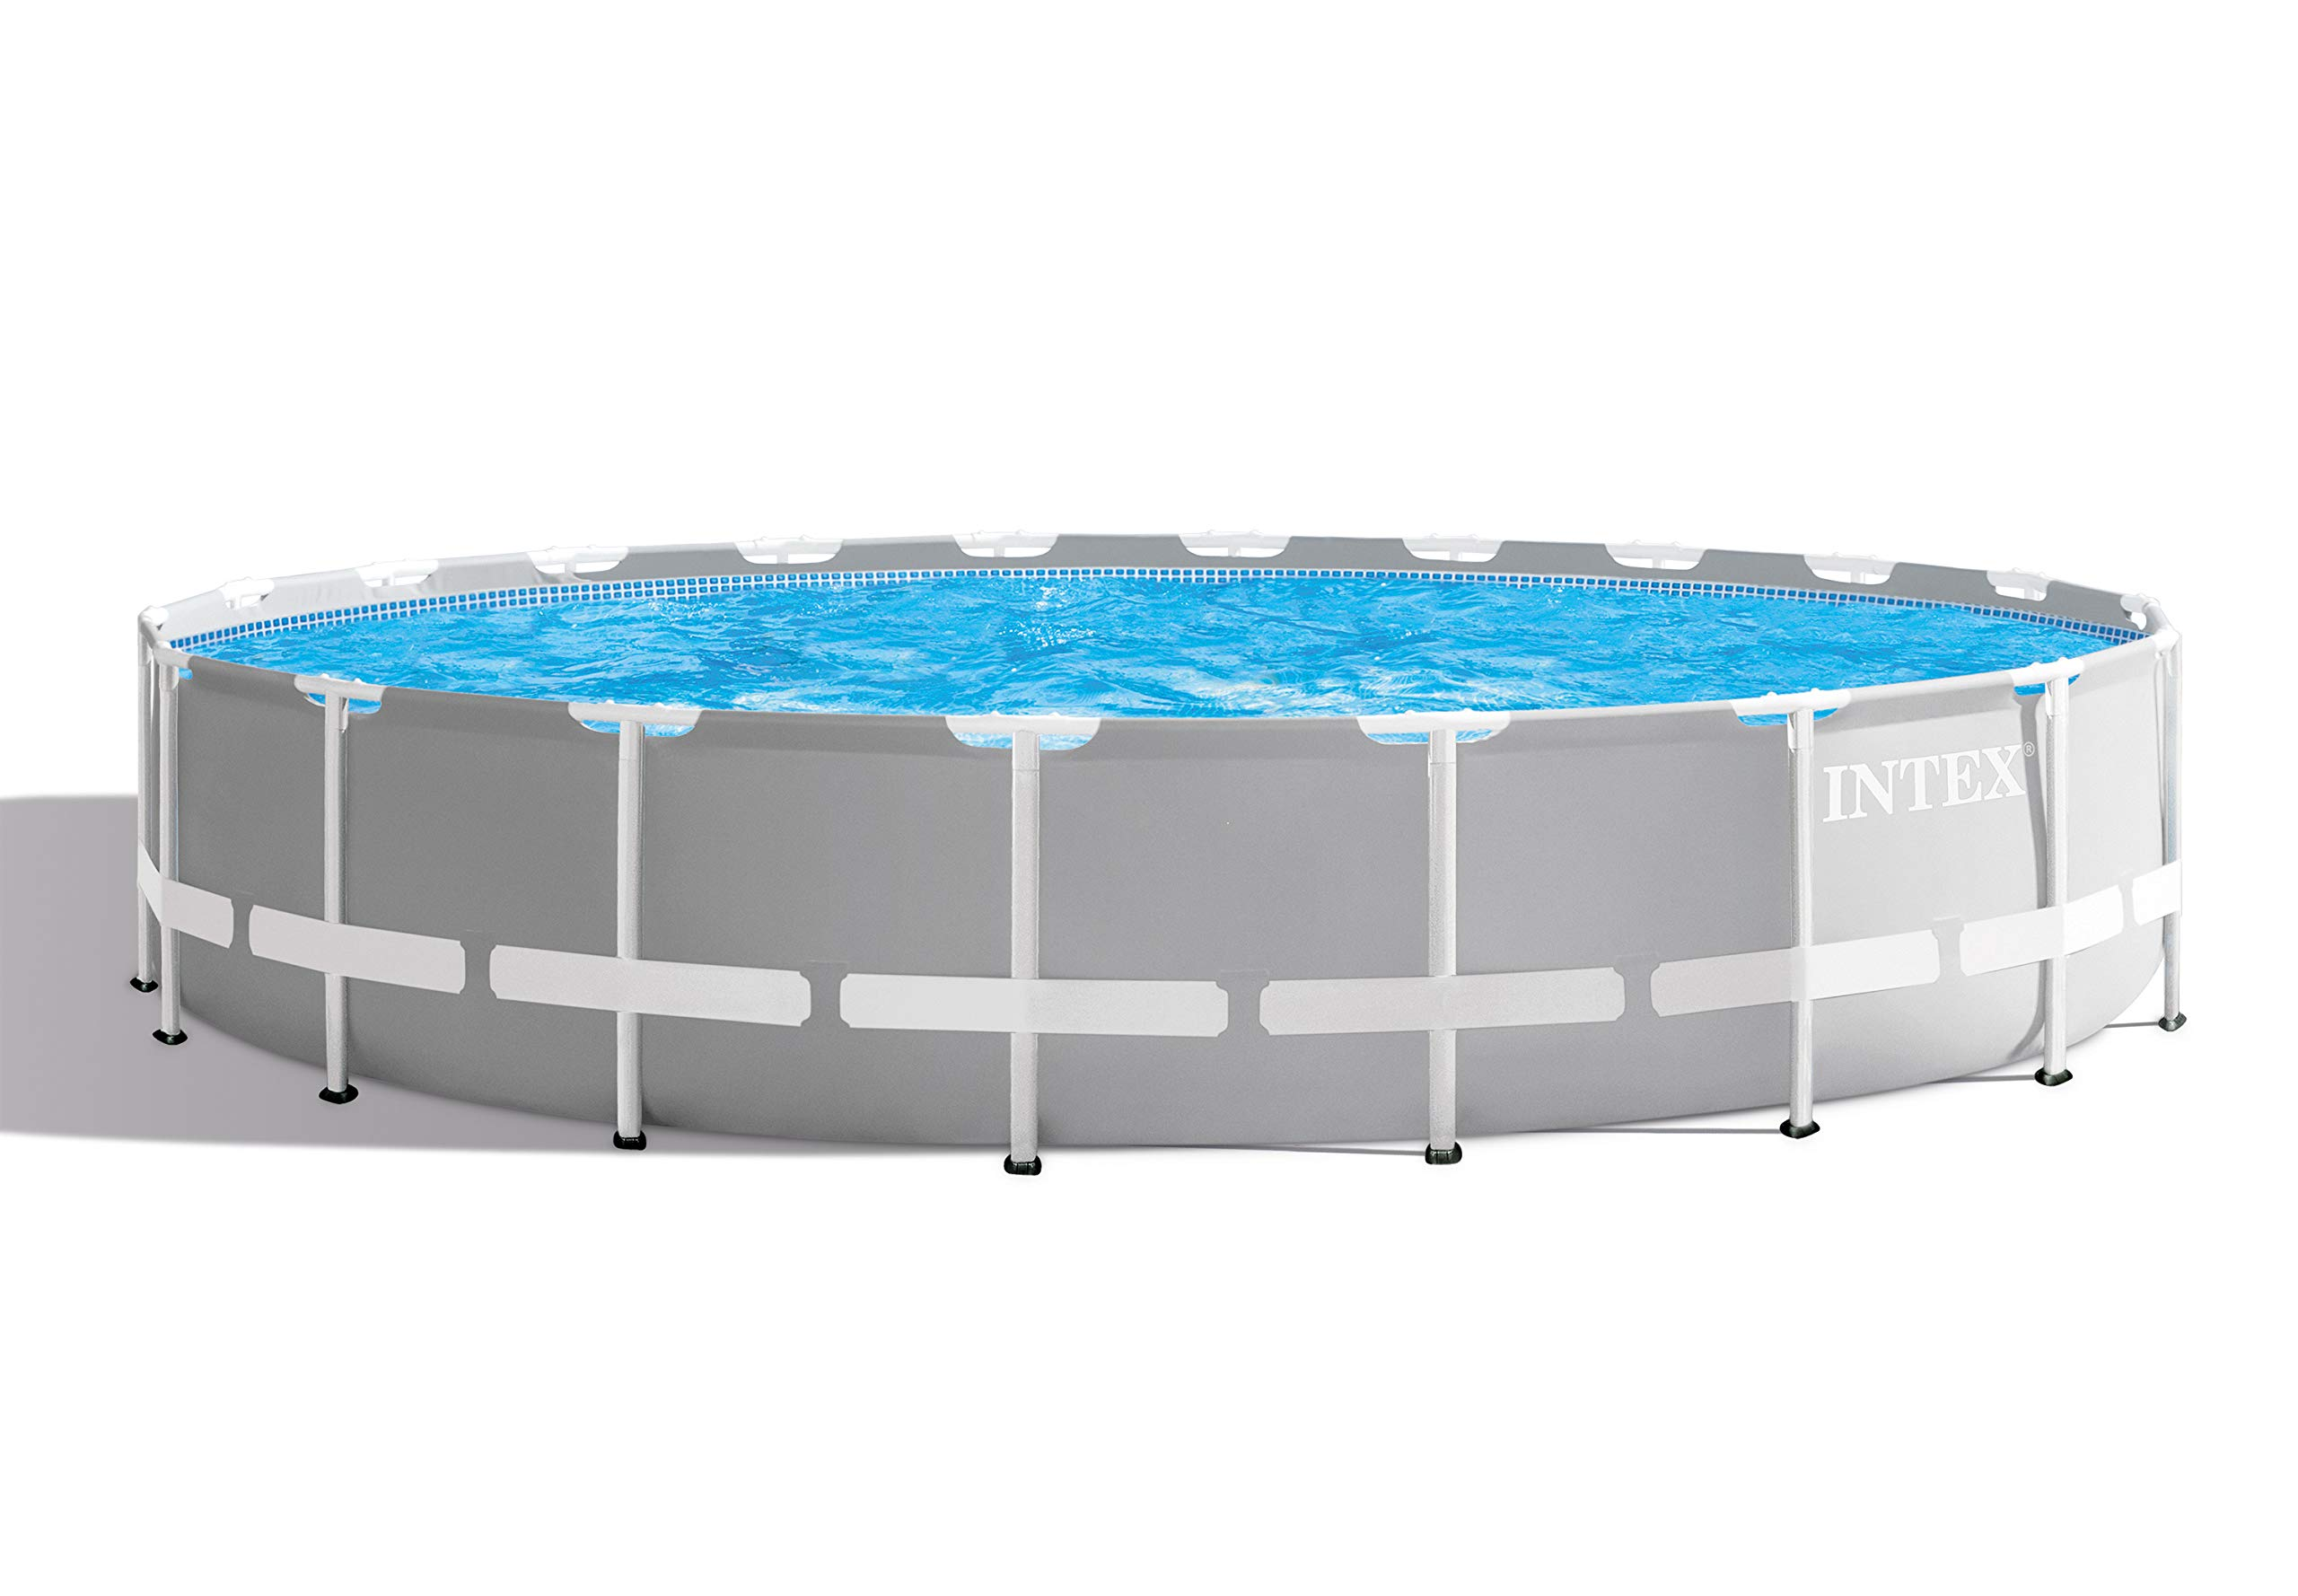 Intex Swimming Diámetro 610 x 132 cm Pool Frame Pool Set Prism Rondo 26756: Amazon.es: Jardín